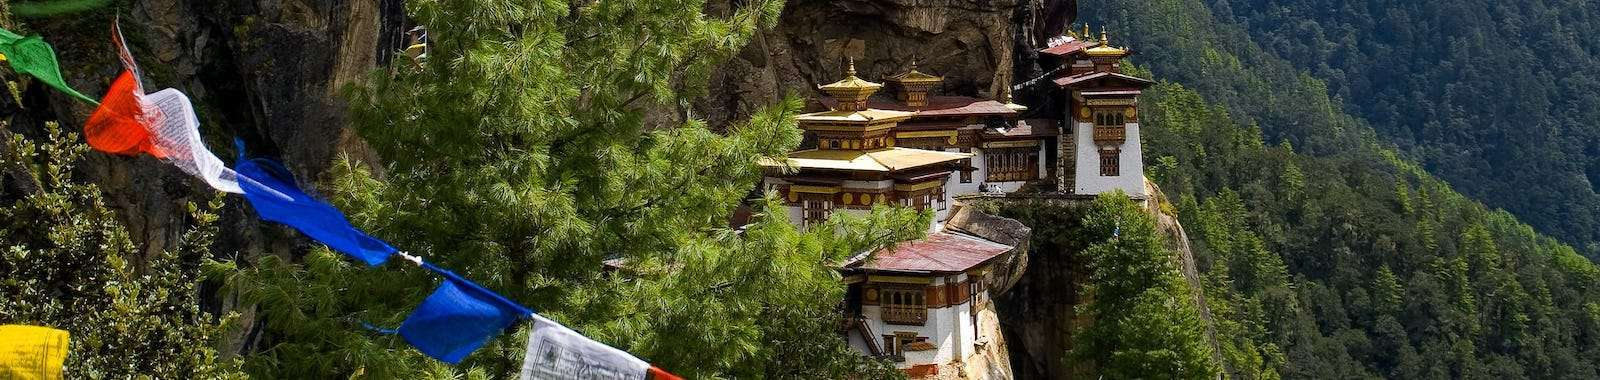 Visit Tiger's Nest on a tailor made holiday to Nepal and Bhutan